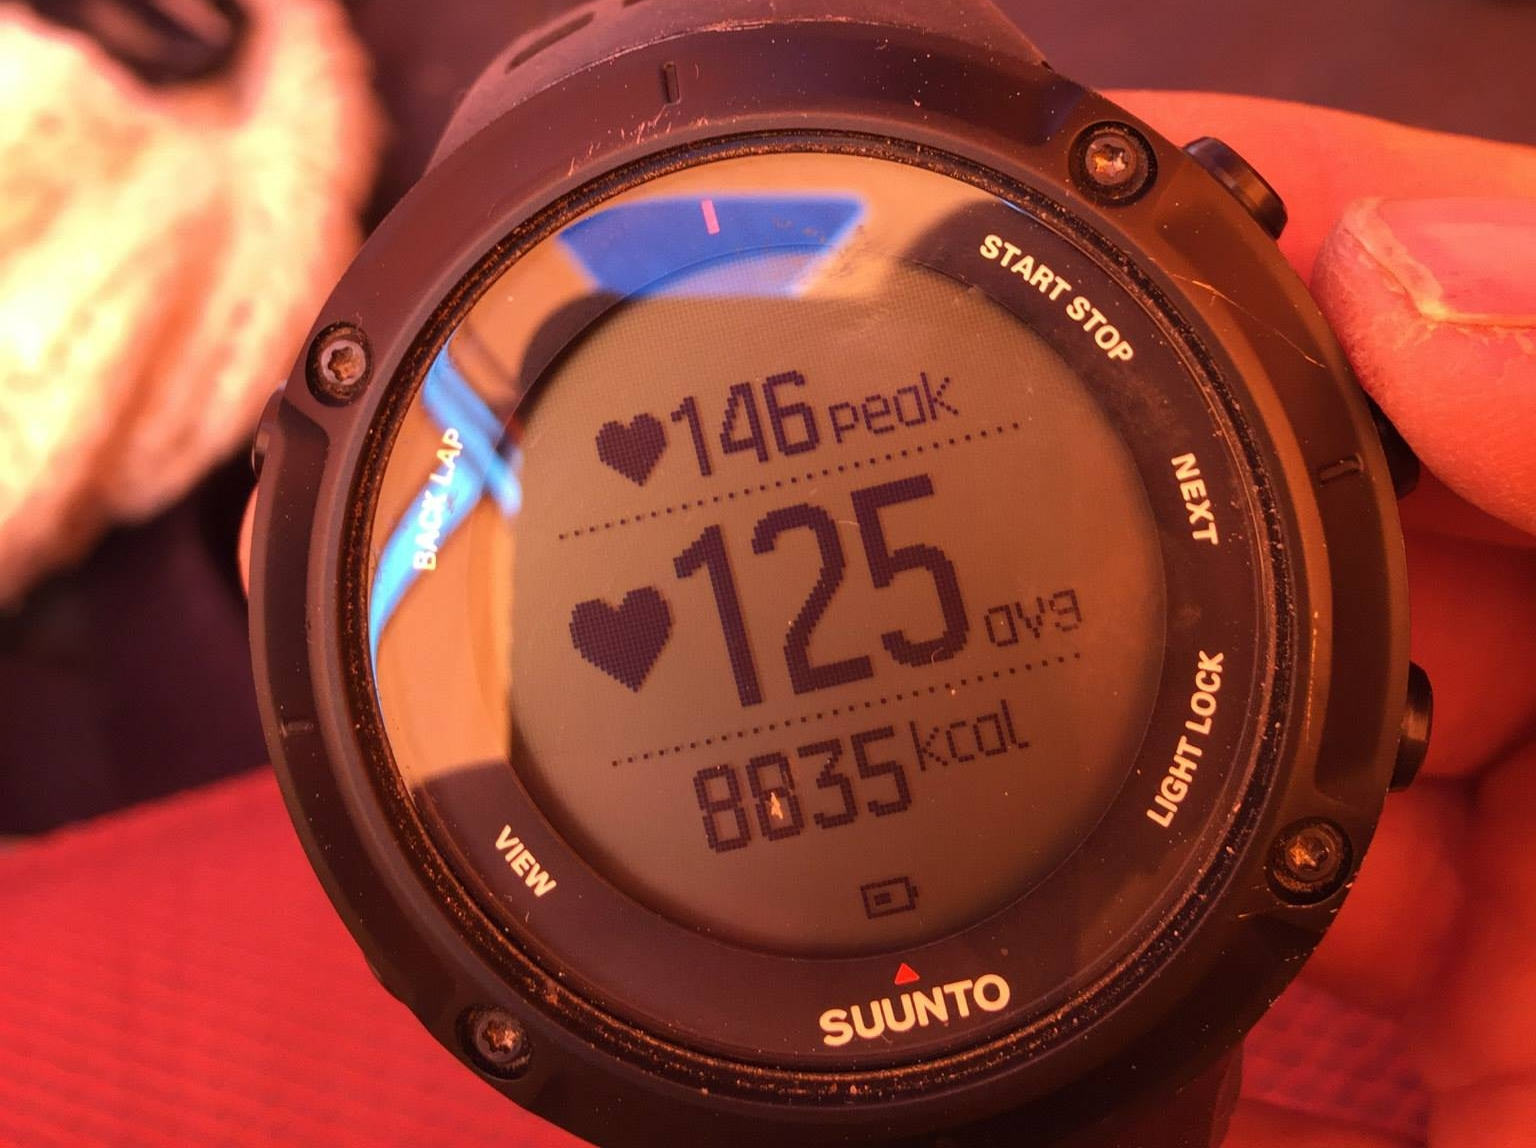 My Suunto's take on summit day... almost 9000 calories, mmh